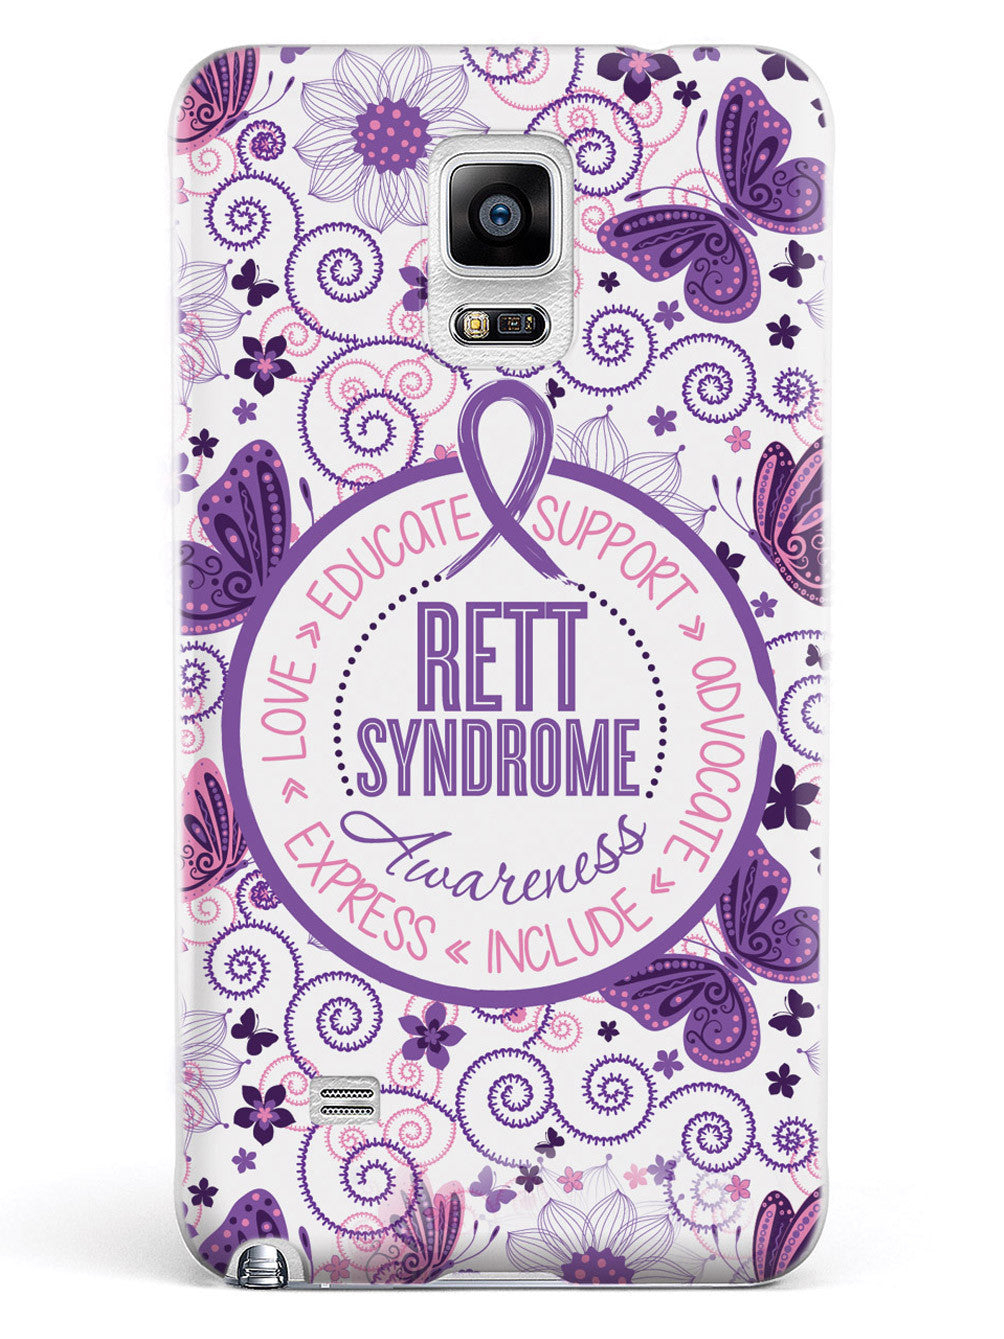 Rett Syndrome Awareness - Butterfly Pattern Case